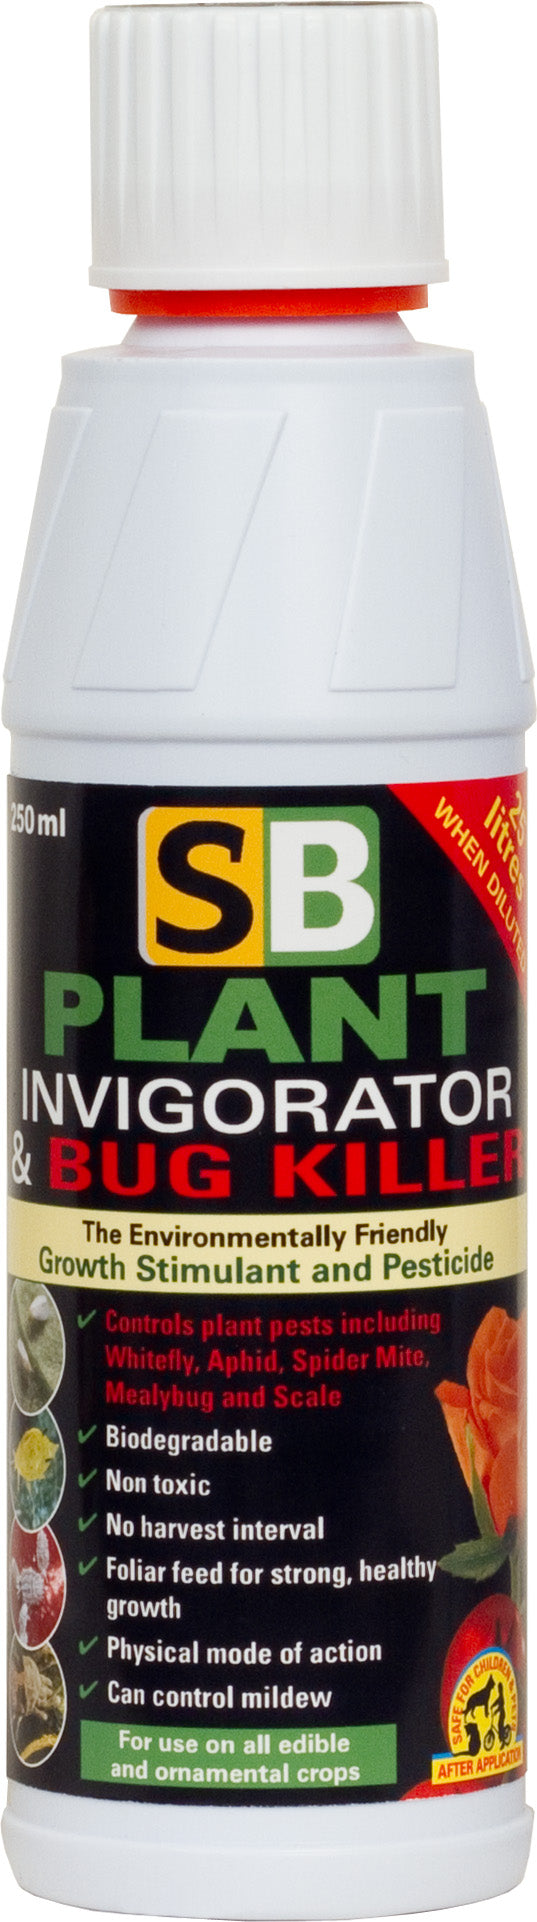 SB Plant Invigorator - Pest control 250ml concentrate